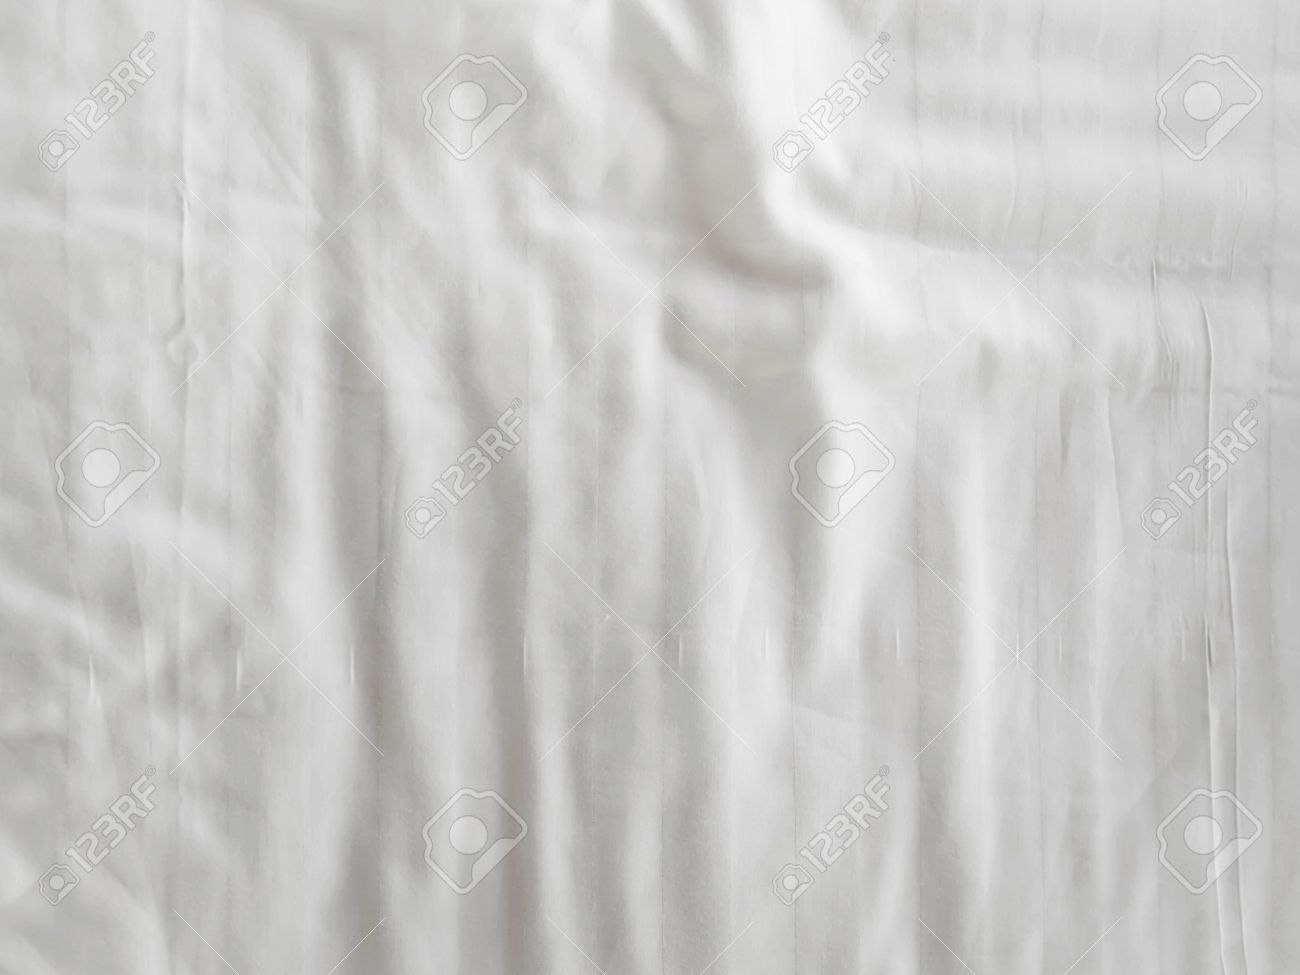 White bed sheets texture - White Fabric Bedsheet Texture Background Stock Photo 58795029